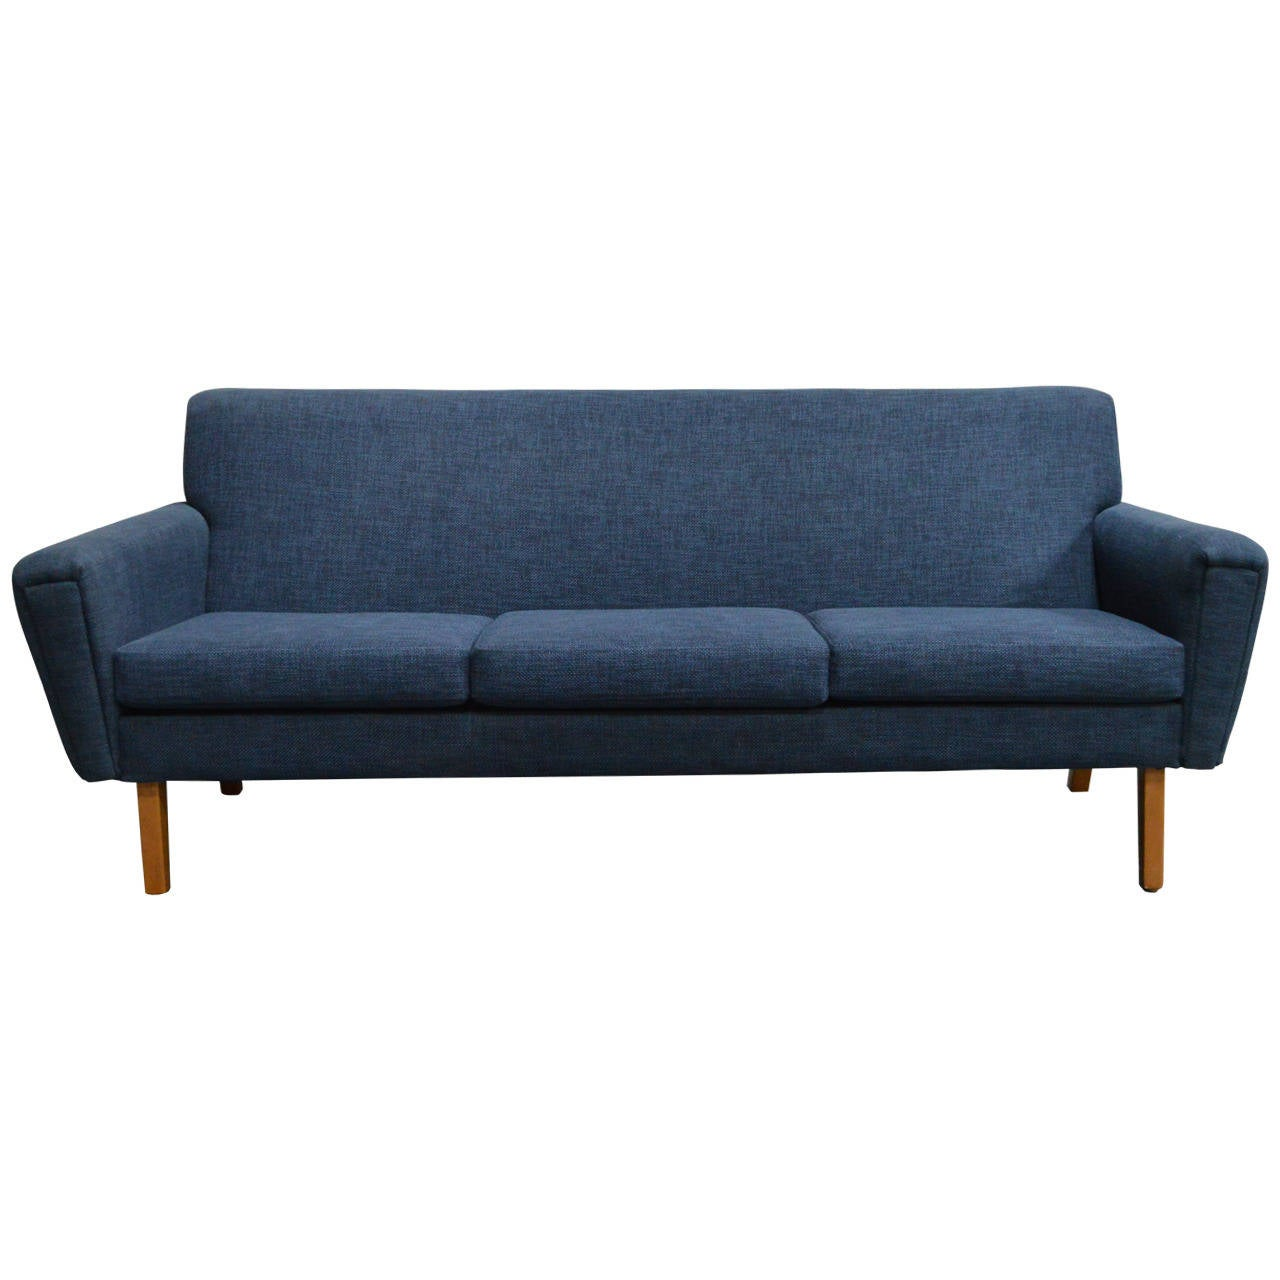 Swedish mid century modern blue sofa at 1stdibs for Mid century modern sofas